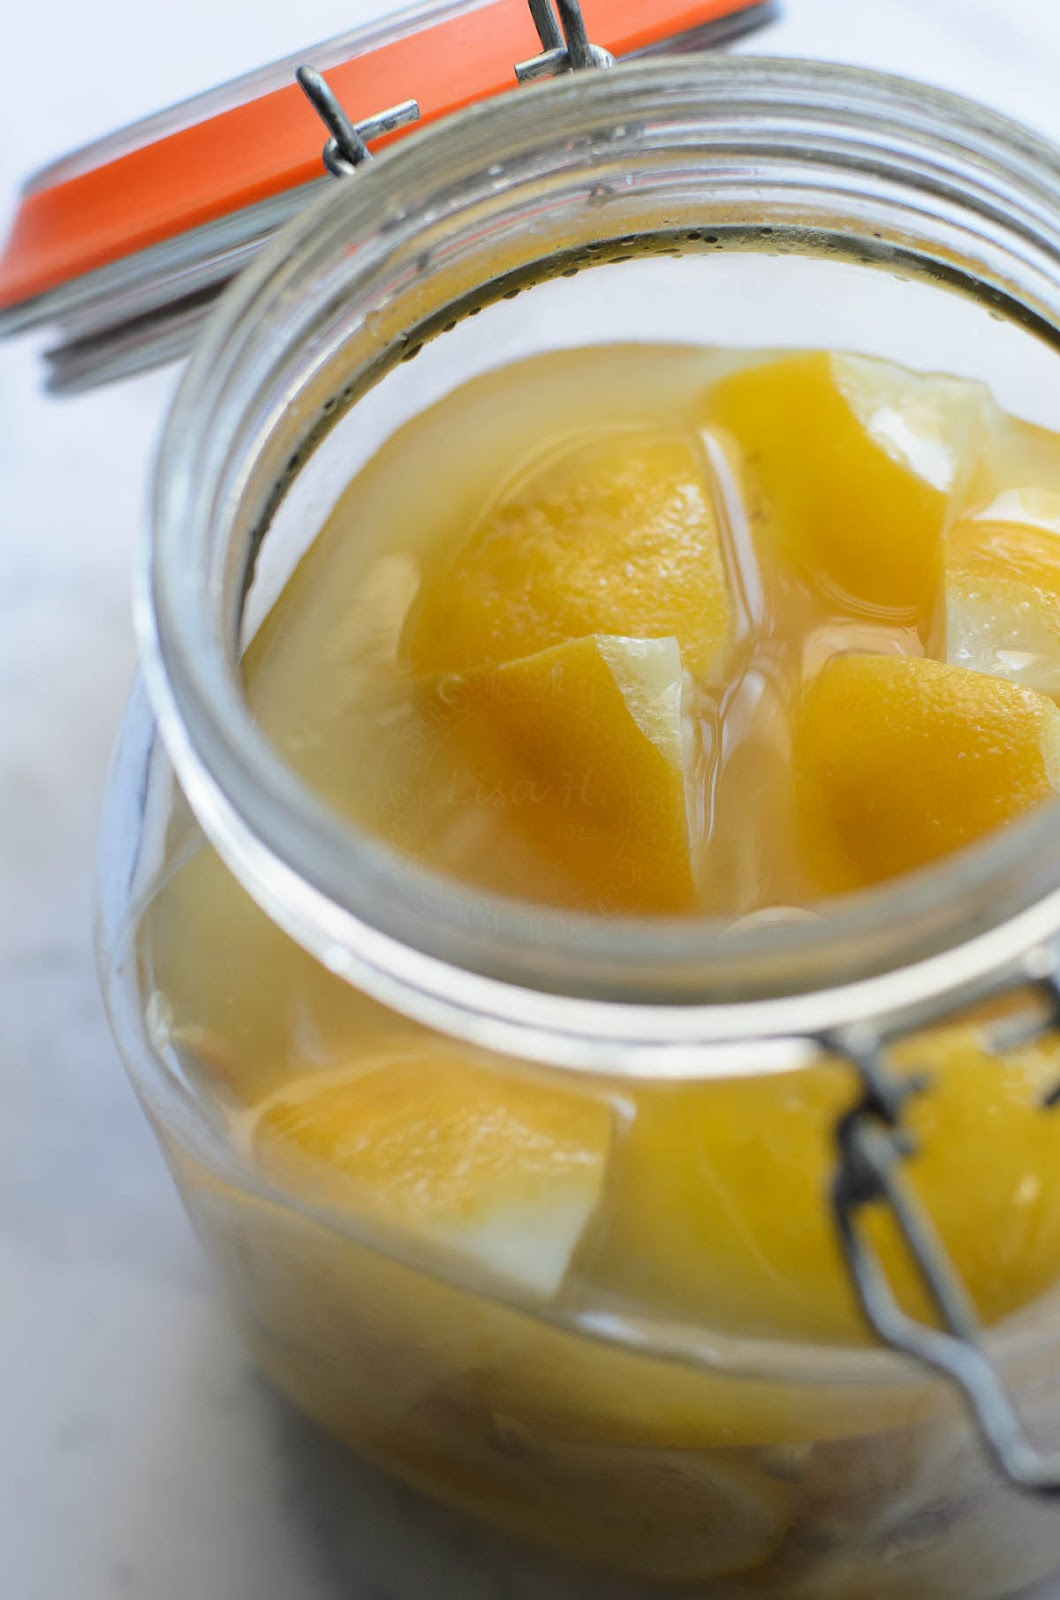 preserved lemons in a jar, ready for consumption photo